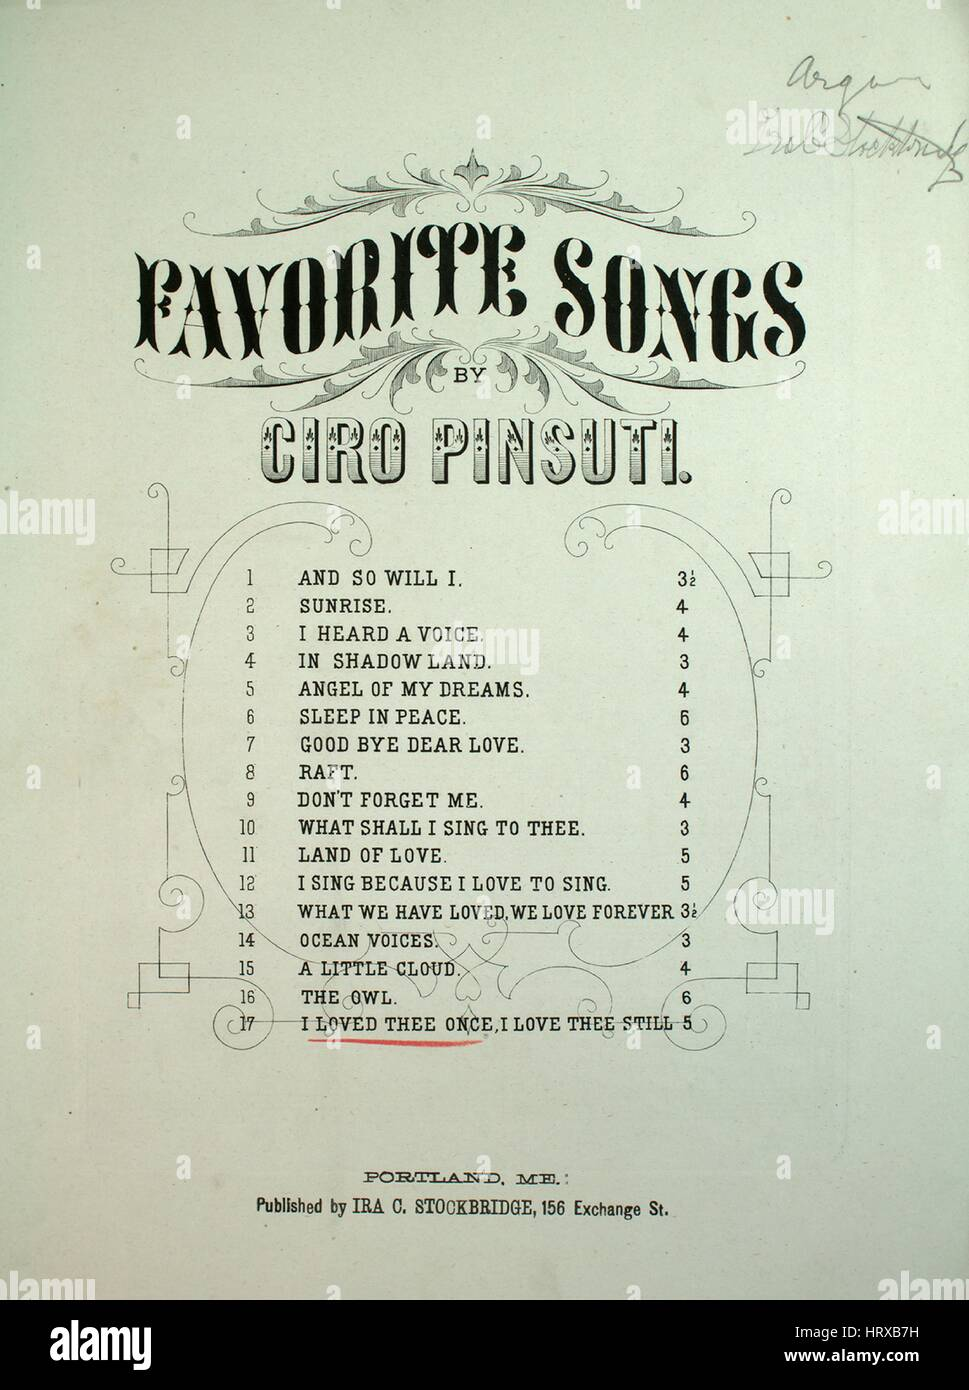 Sheet music cover image of the song 'Favorite Songs by Ciro